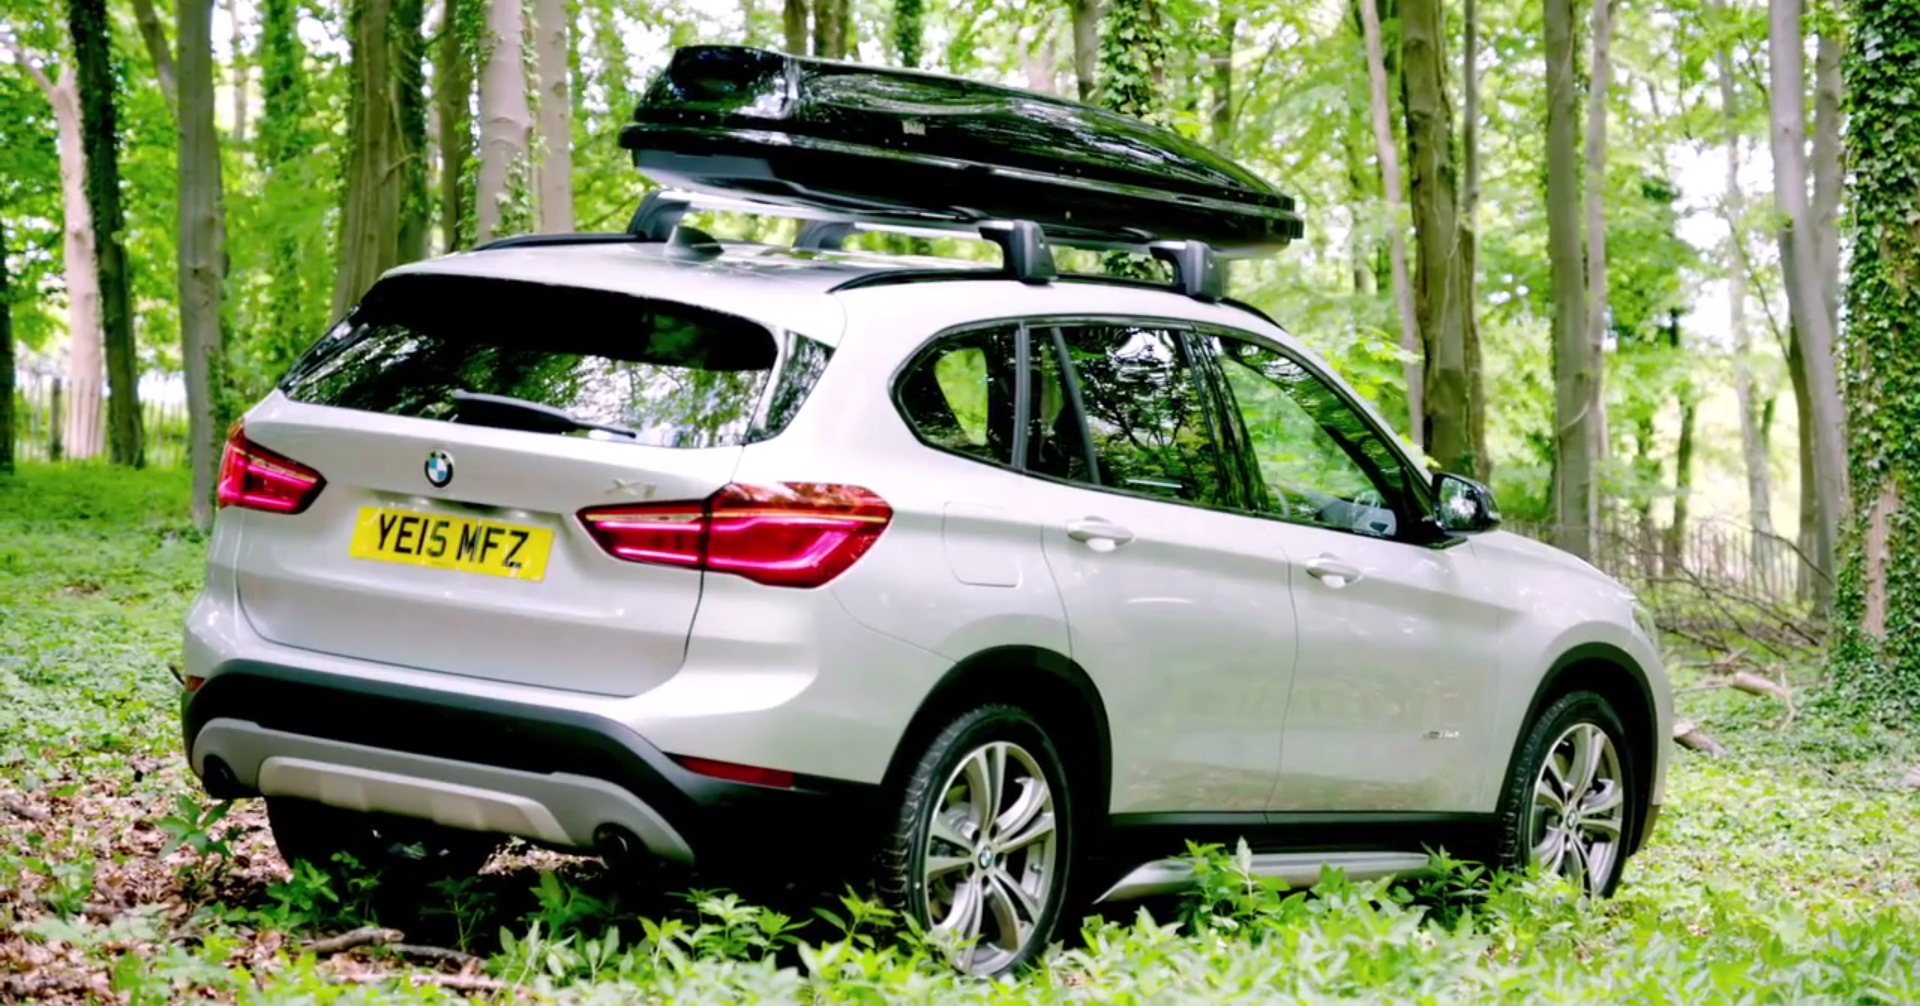 BMW Showcases X1 Accessories, We Fall In Love with Its Shape